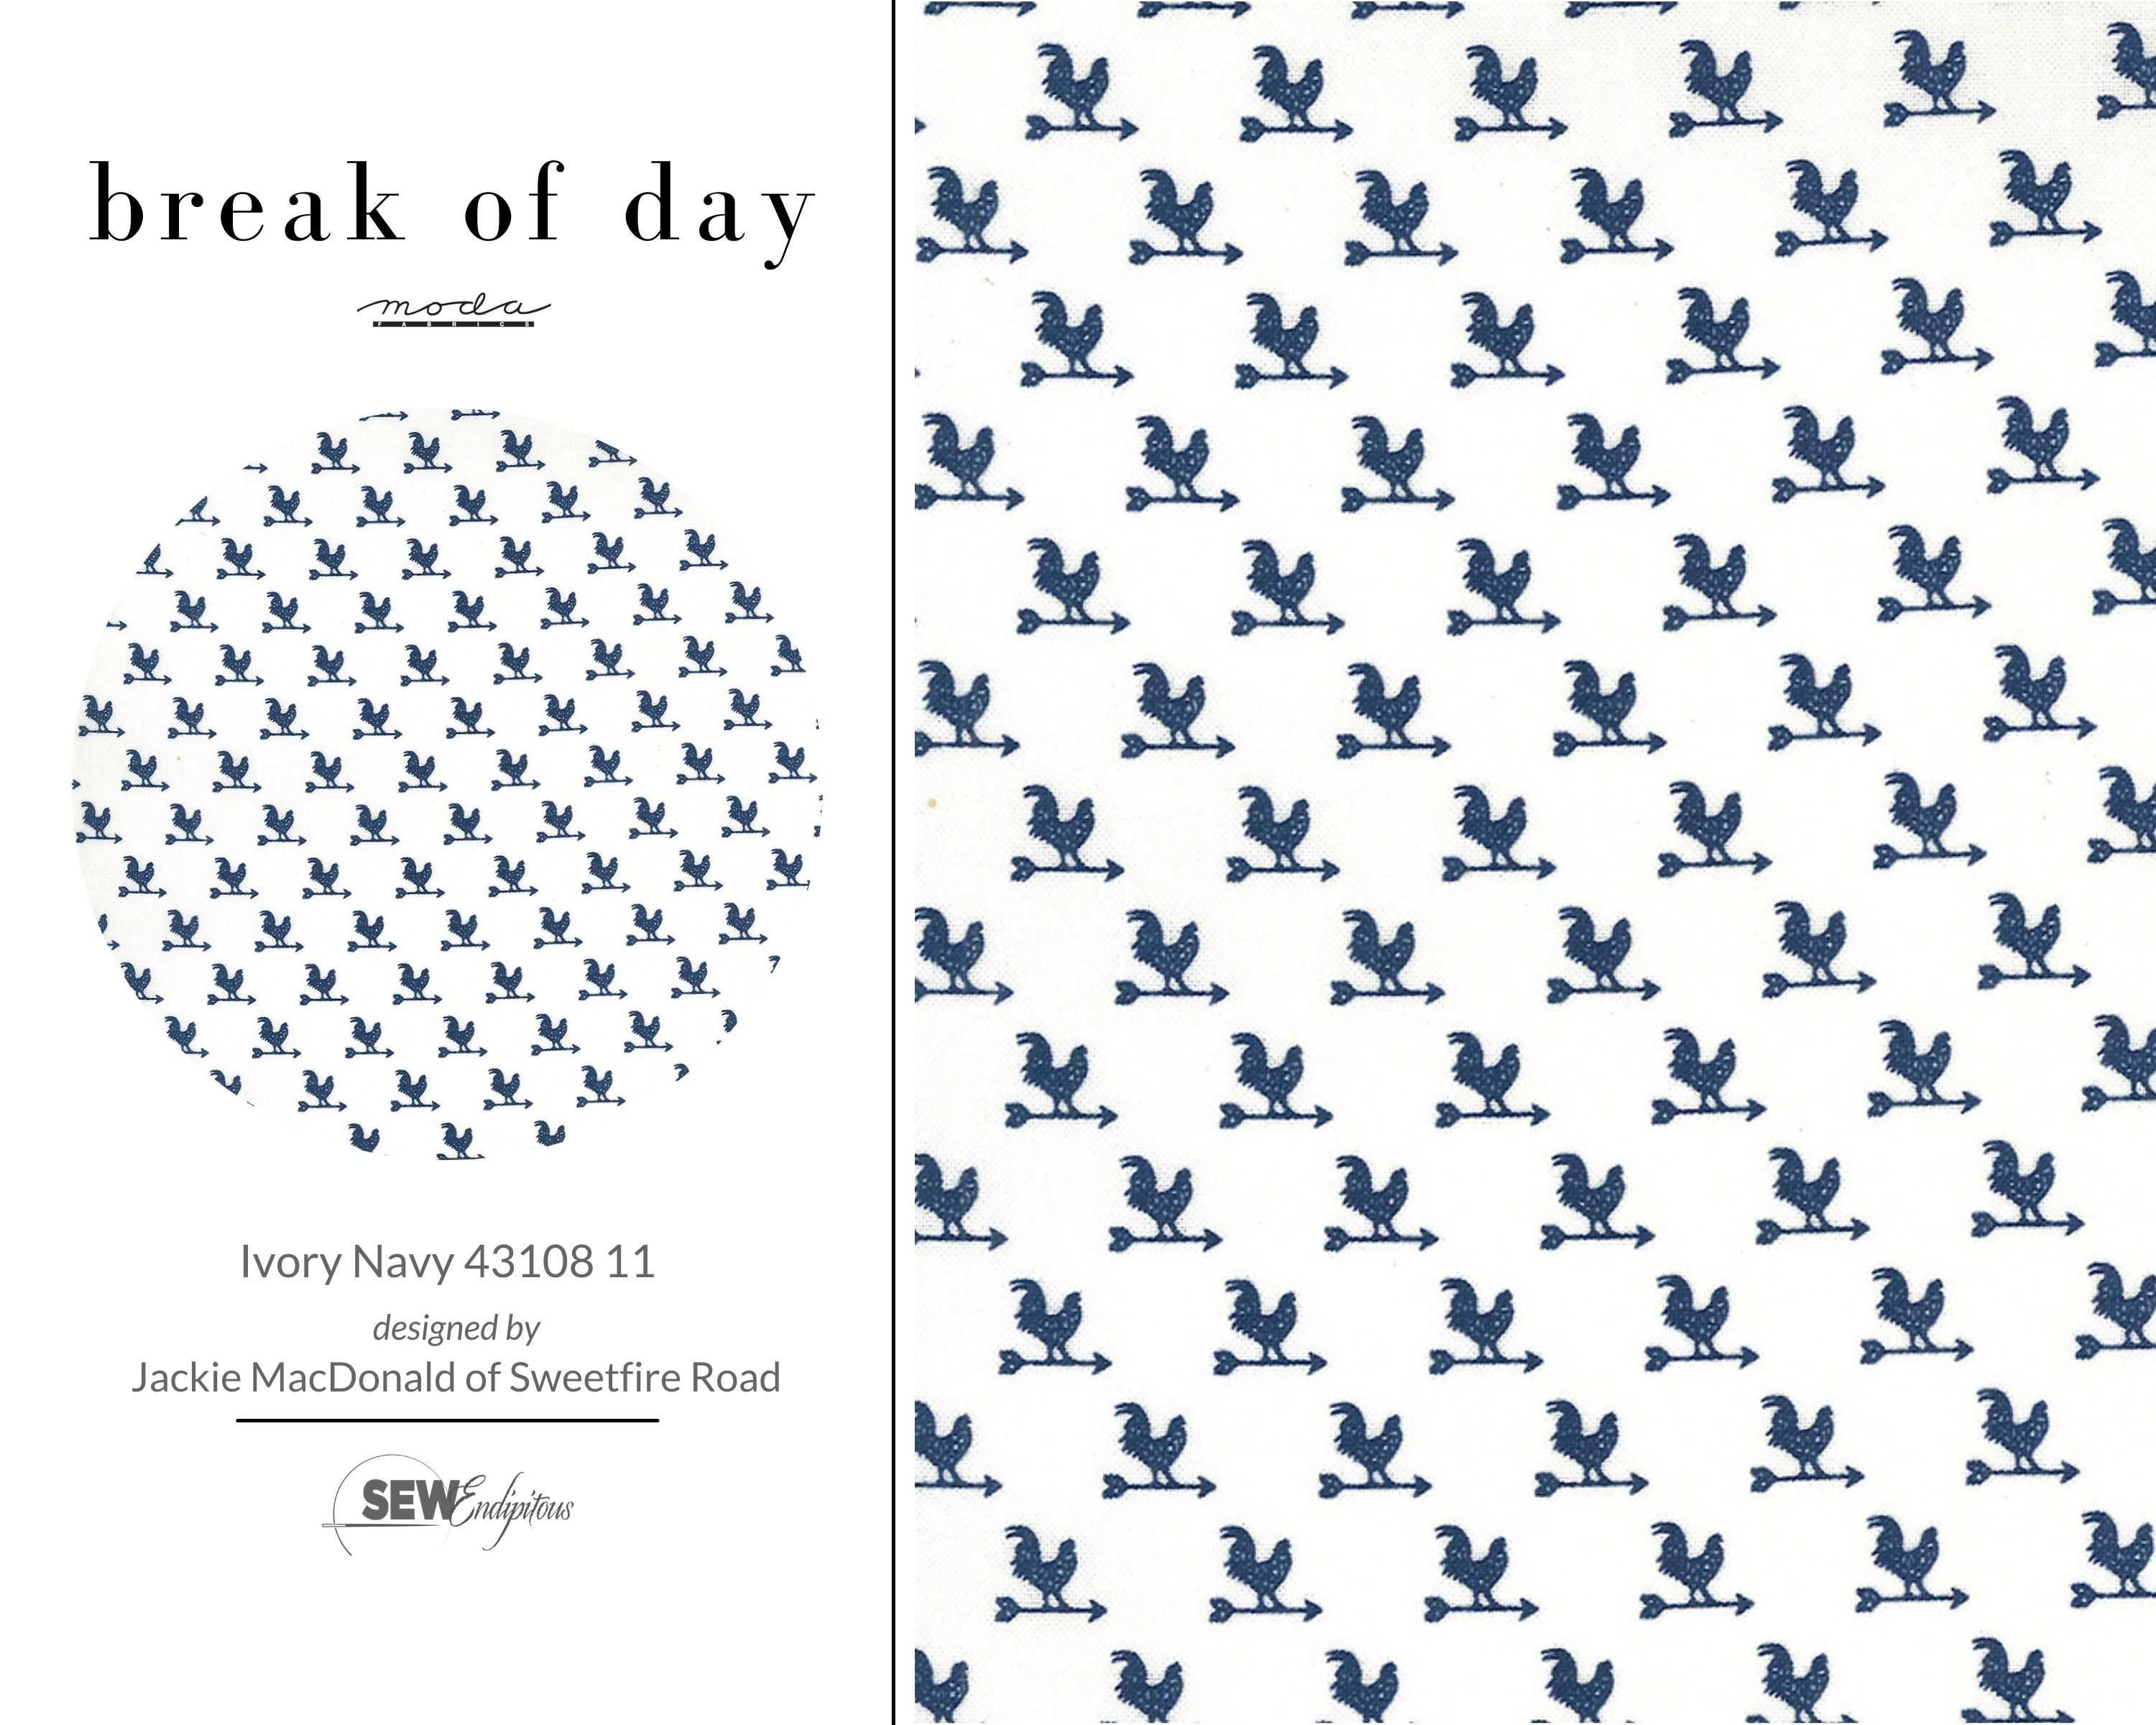 Break Of Day - Ivory Navy 43108 11